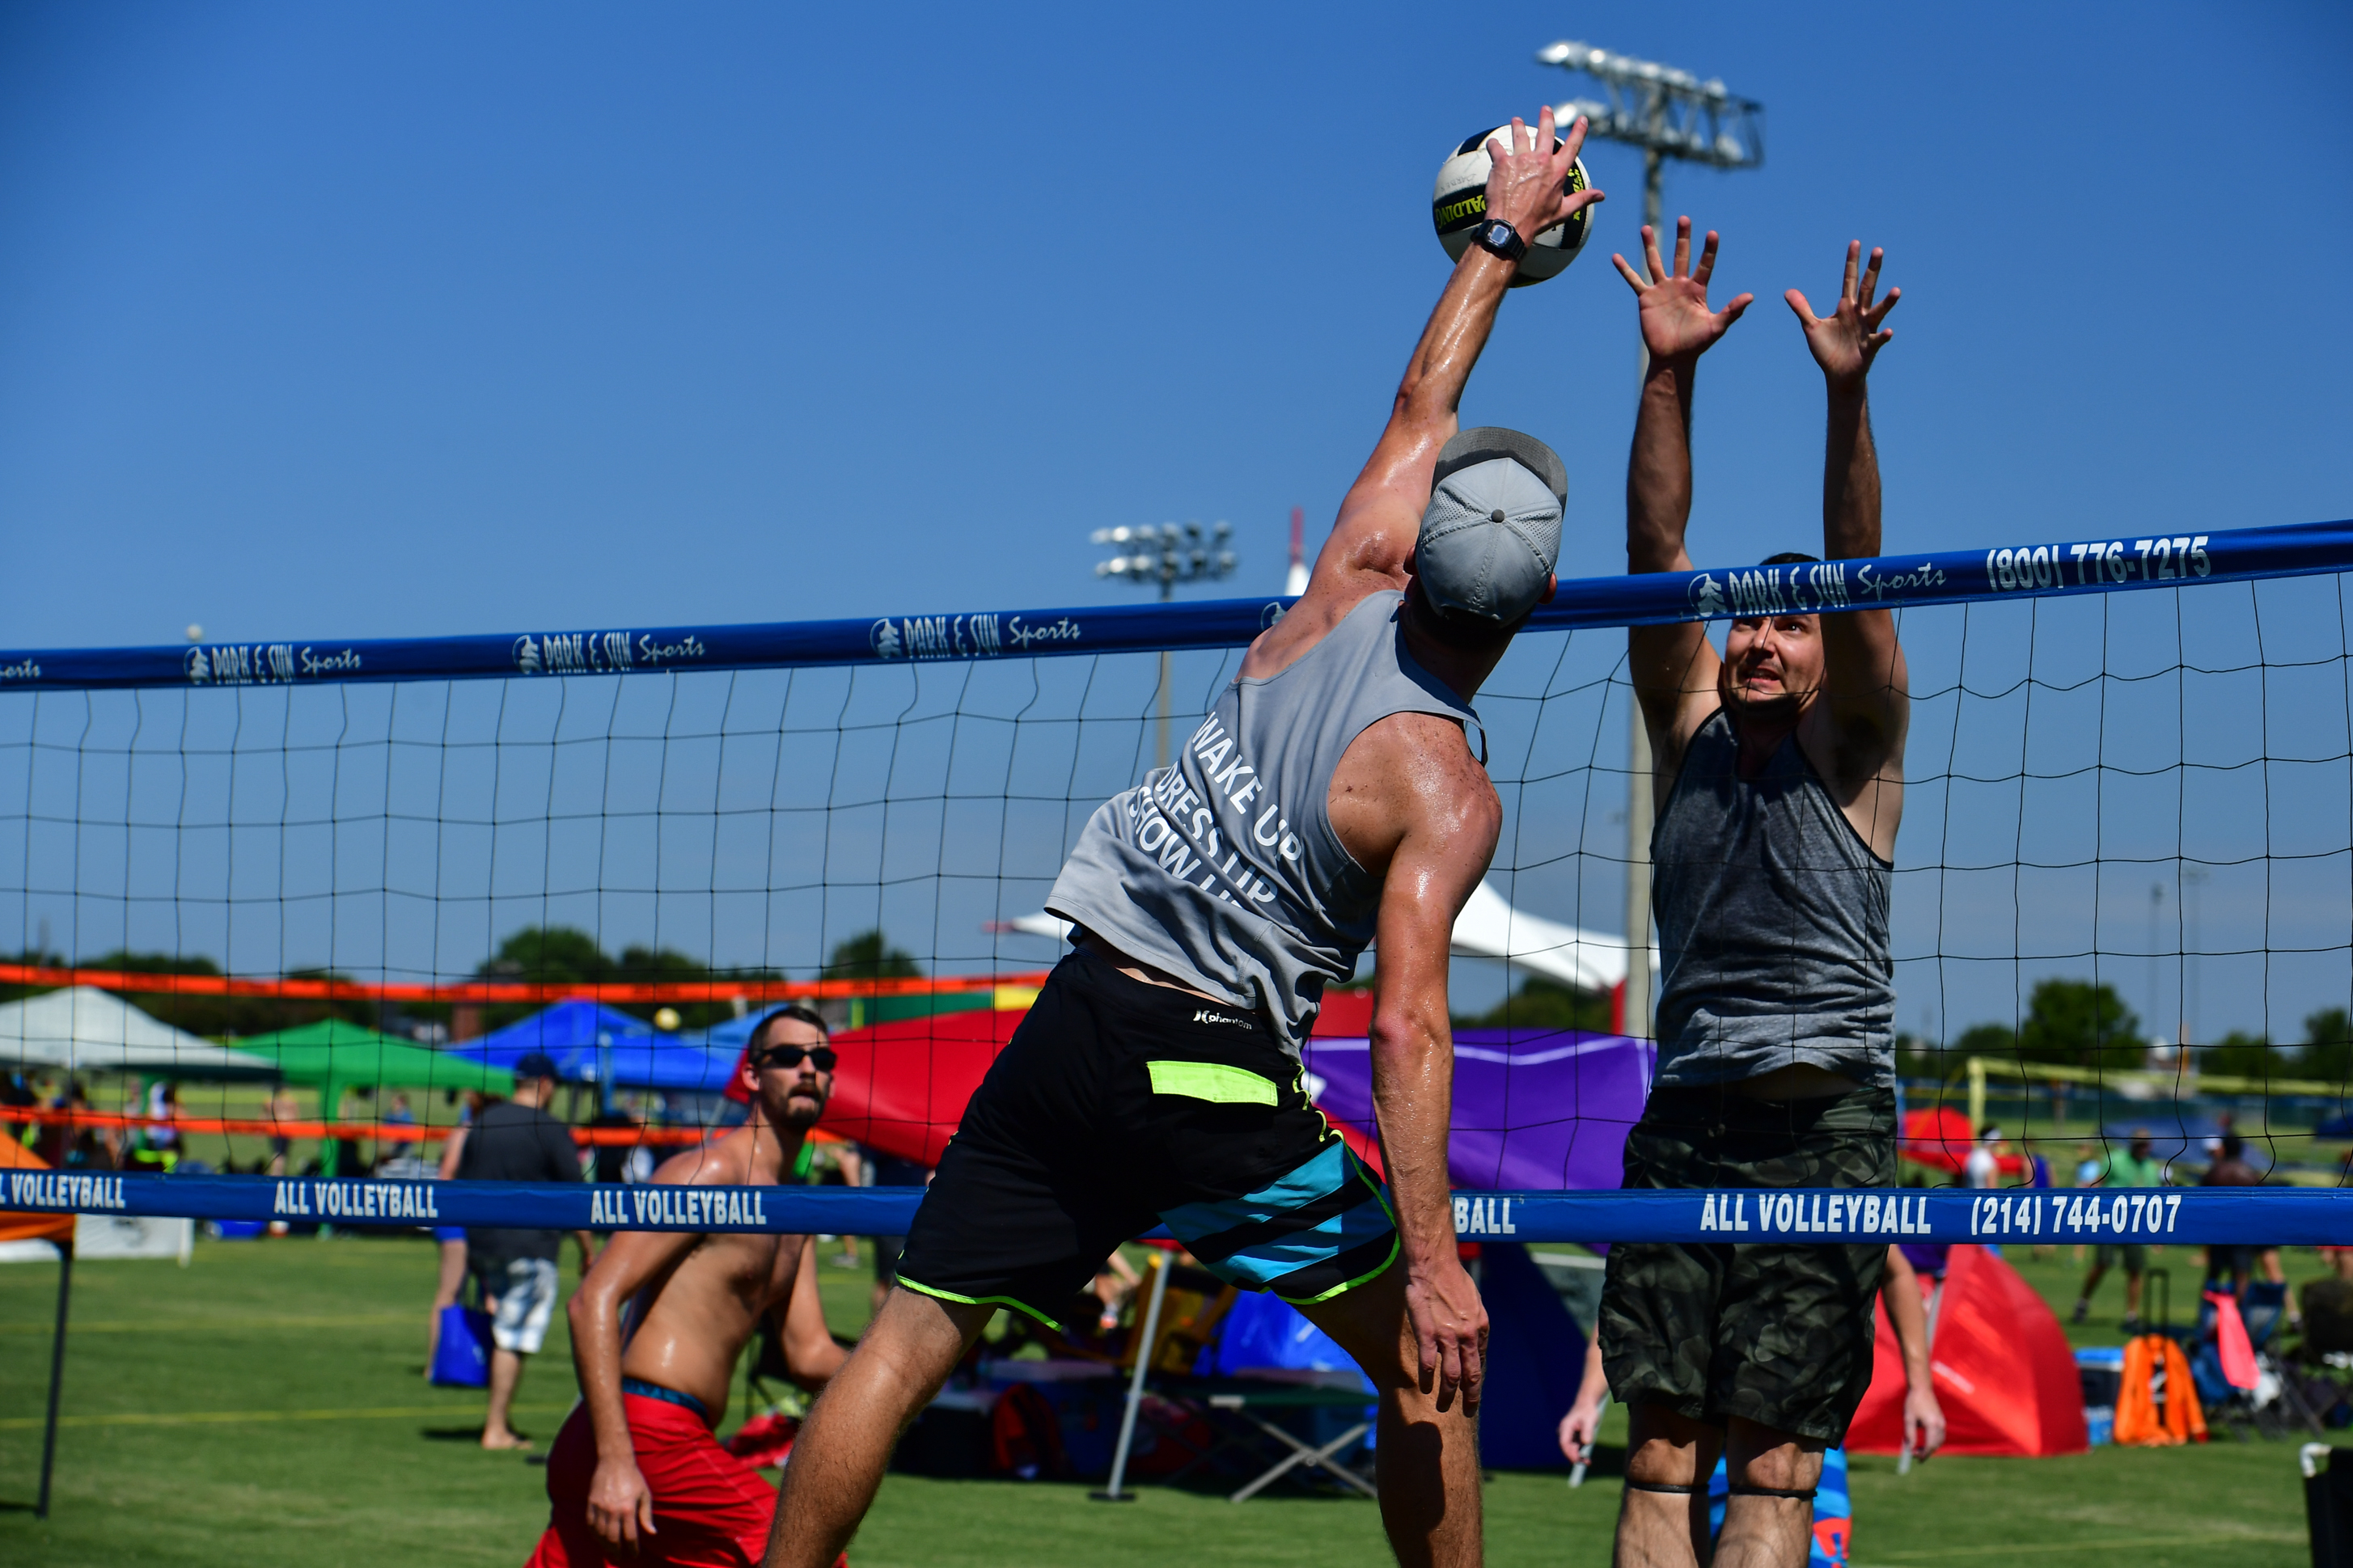 Spikefest 2016 Photo Gallery – Dianne Webster, Sports Photographer